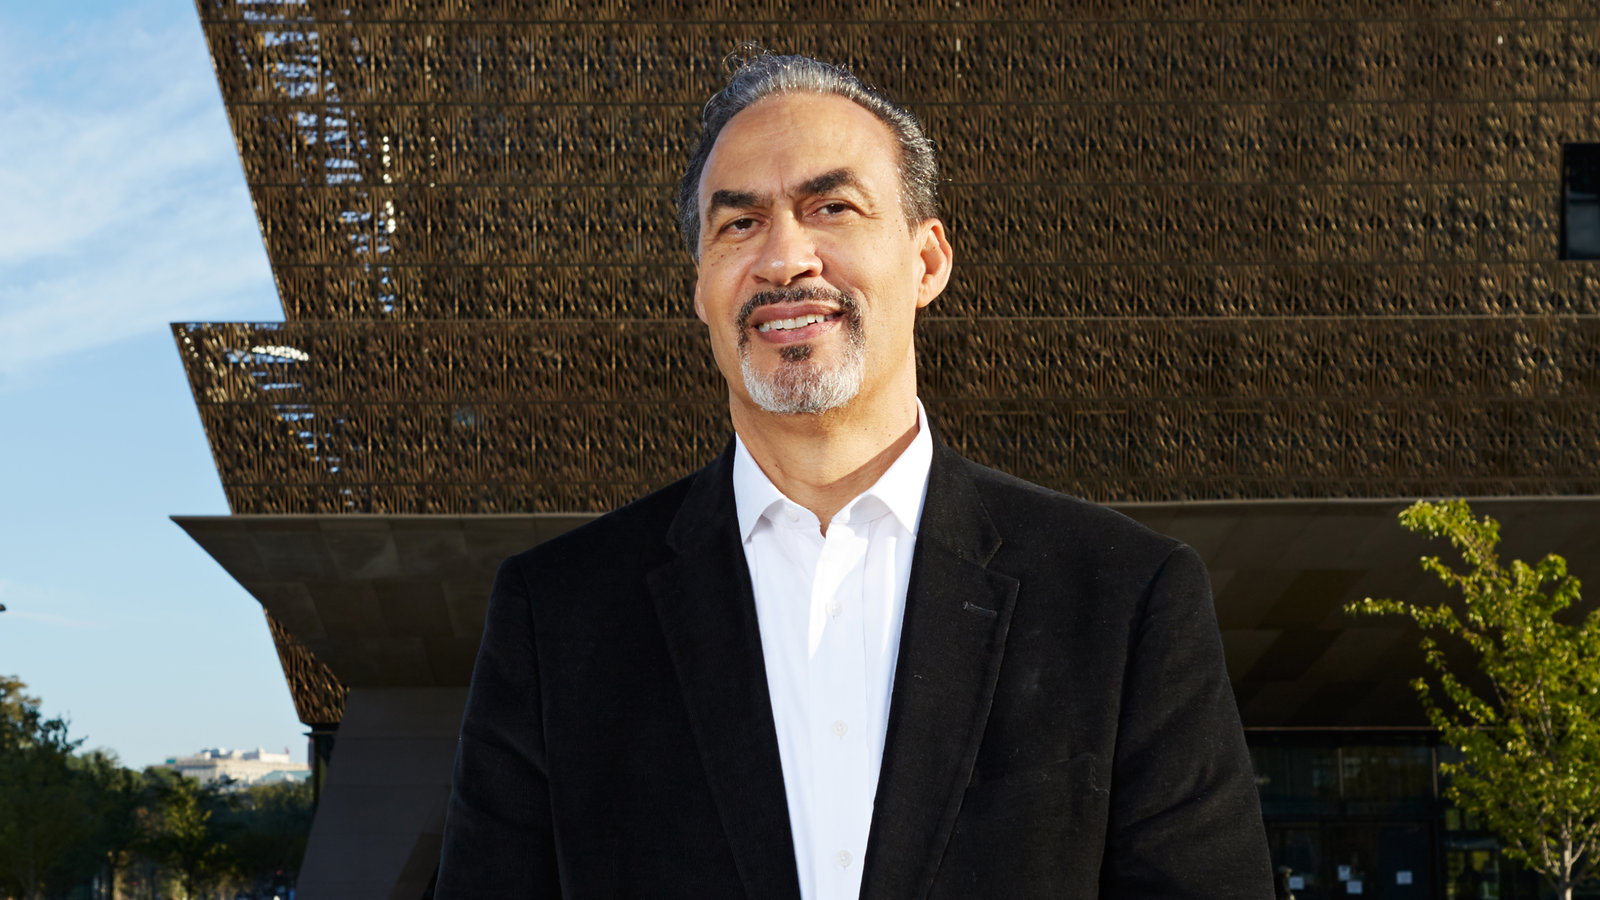 Architect Phillip Freelon in front of the Smithsonian National Museum of African American History, in DC.